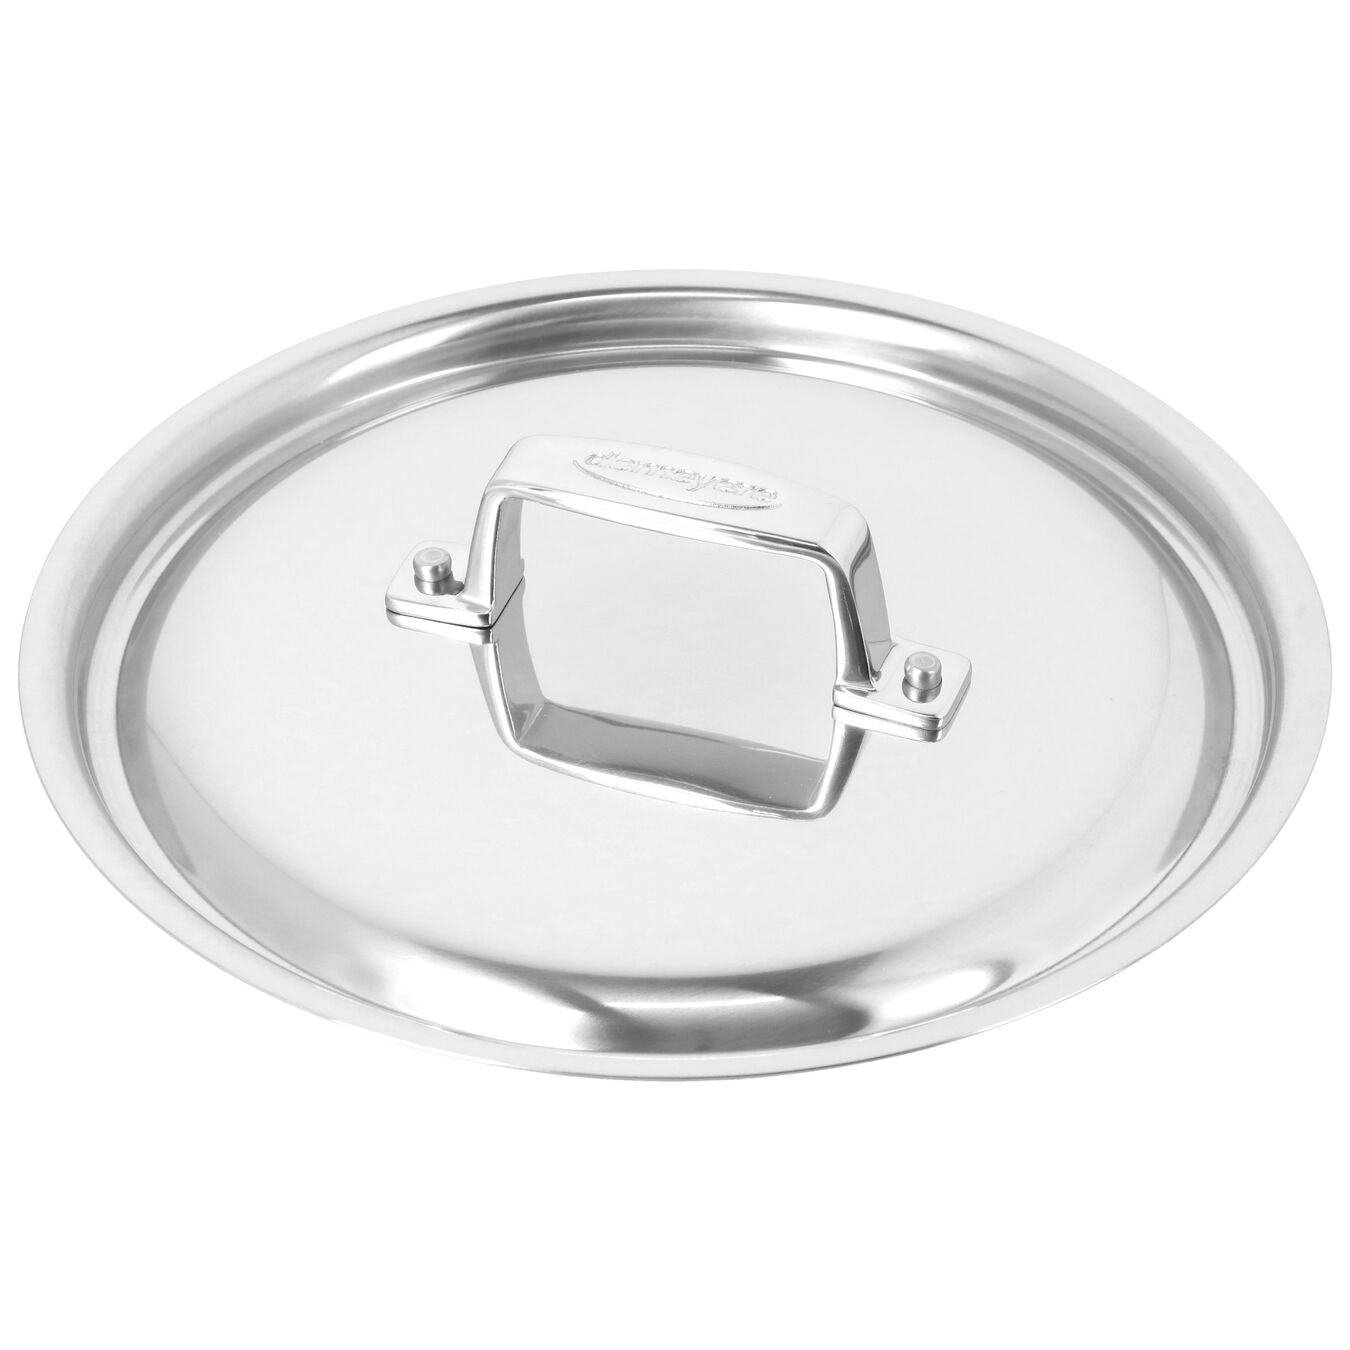 3.8 l round sauce pan with lid 4QT, silver,,large 7